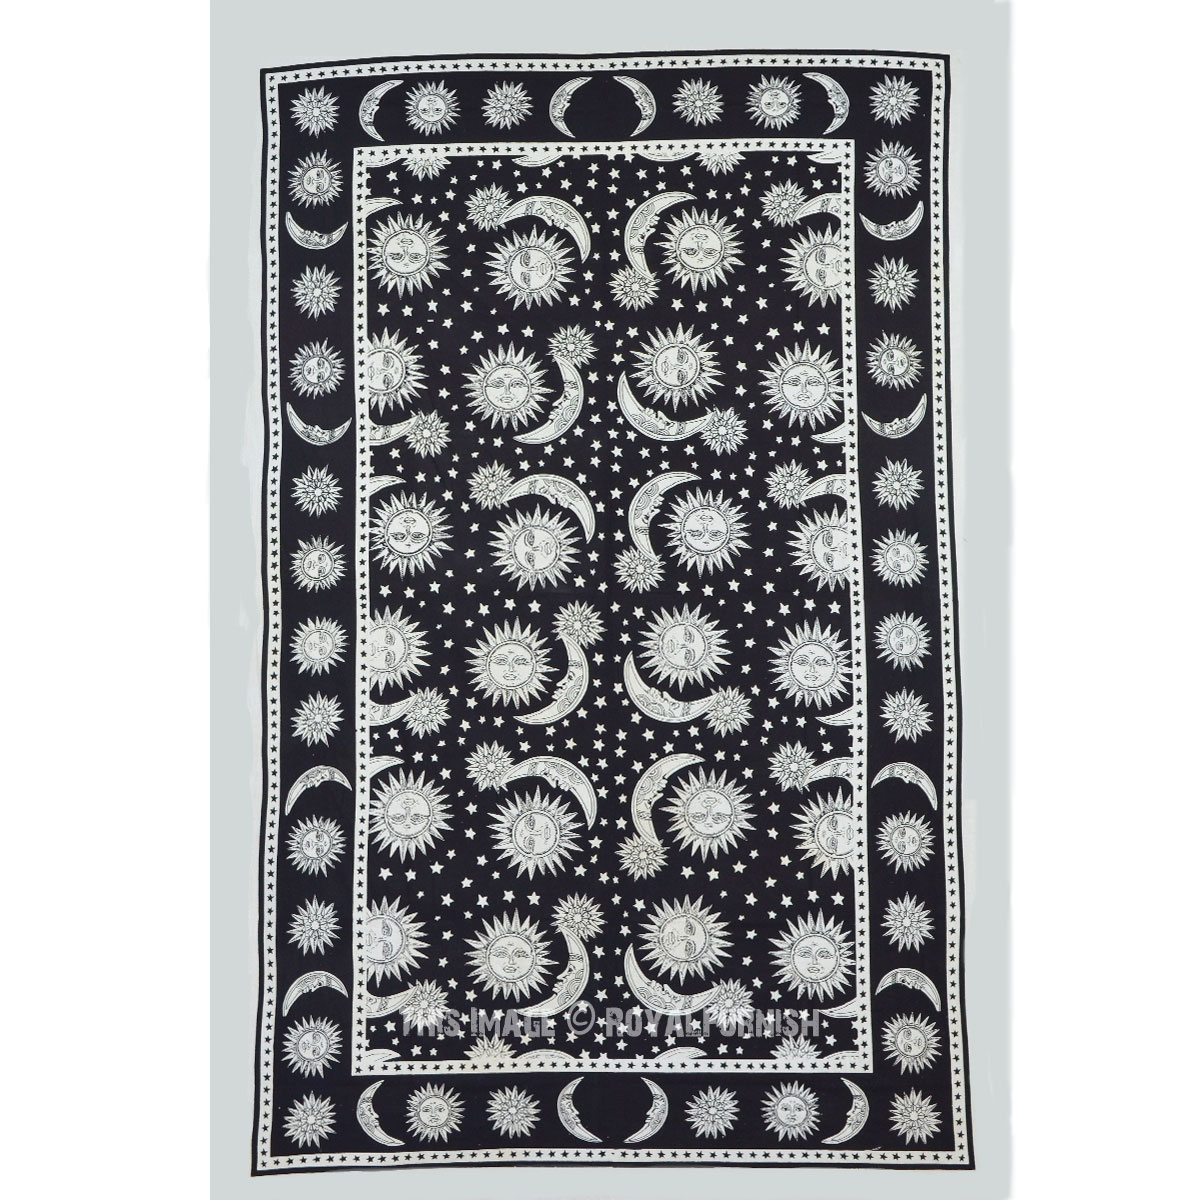 Twin Black And White Psychedelic Celestial Sun Moon